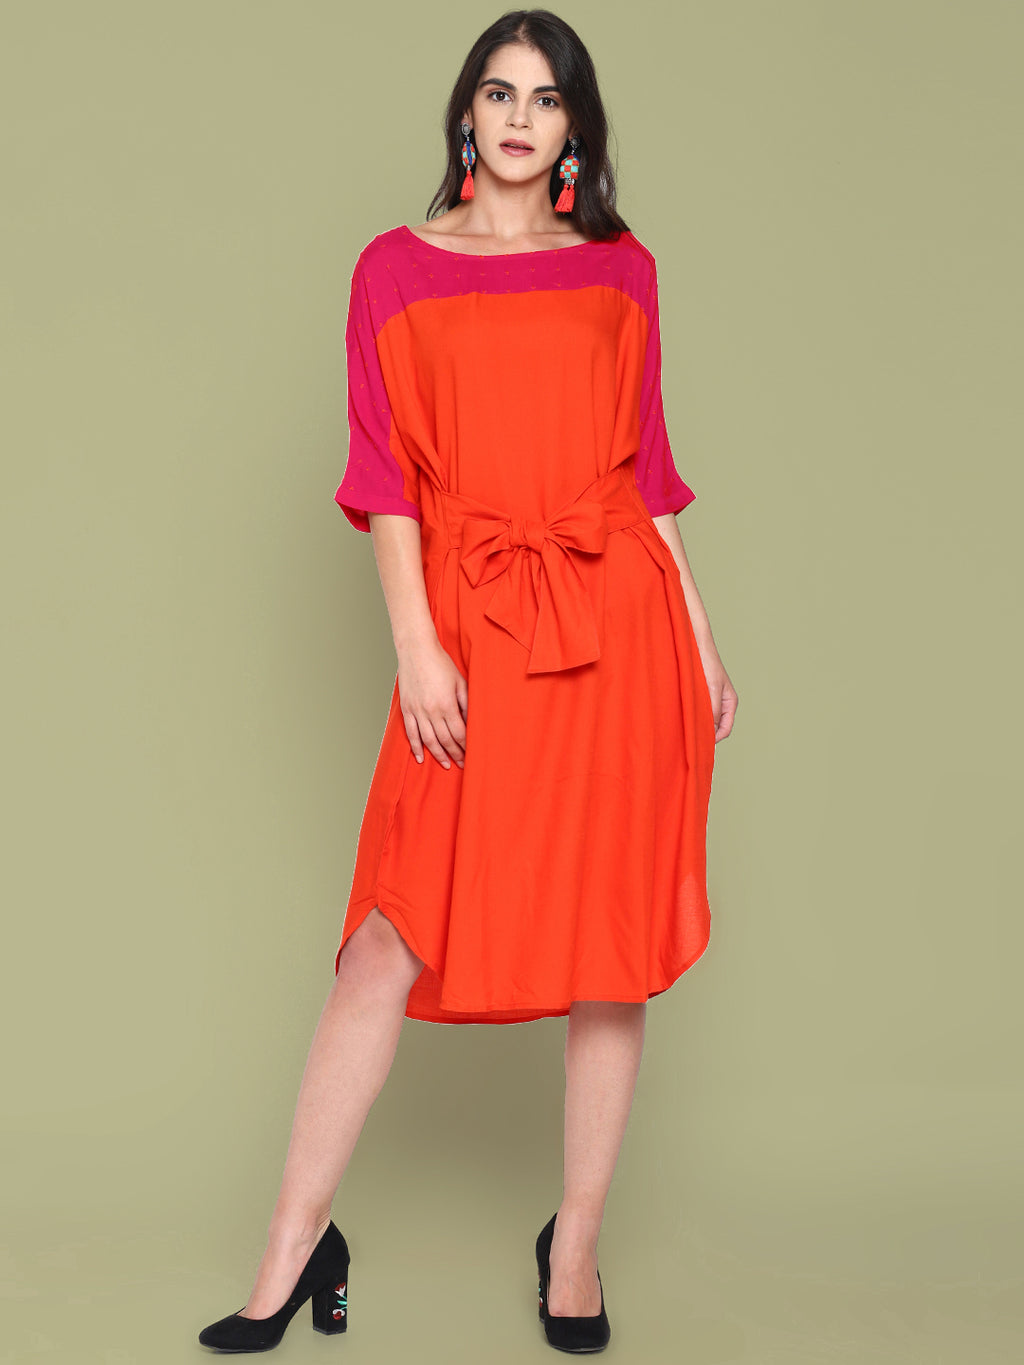 Orange Color Block Shift Dress With Tie Ups | Untung